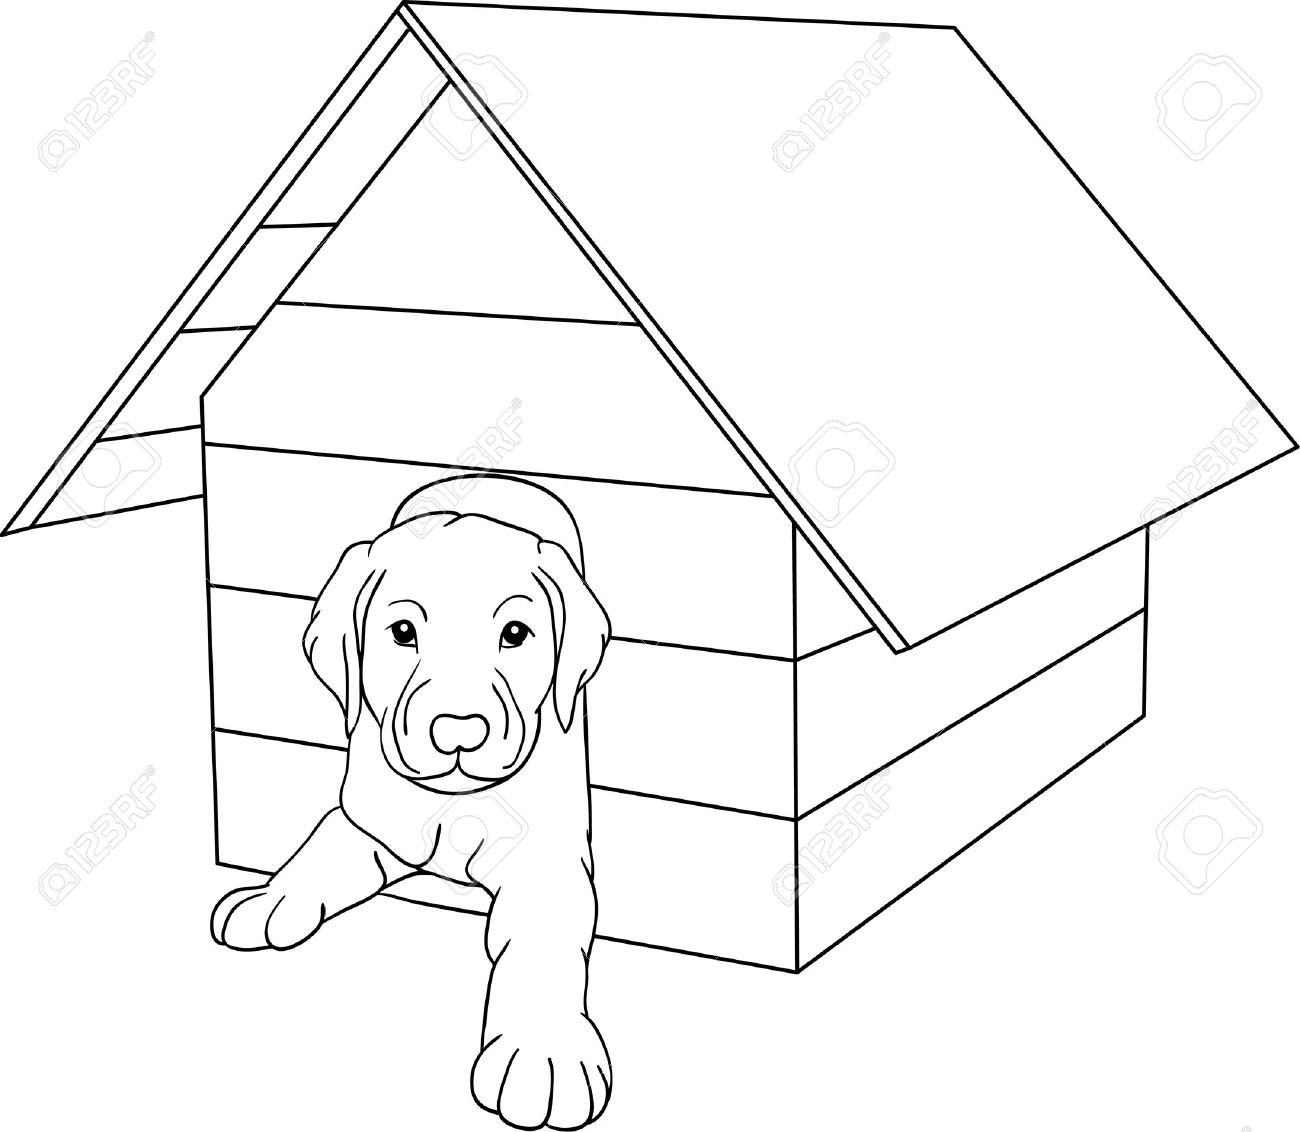 Doghouse Drawing At Getdrawings